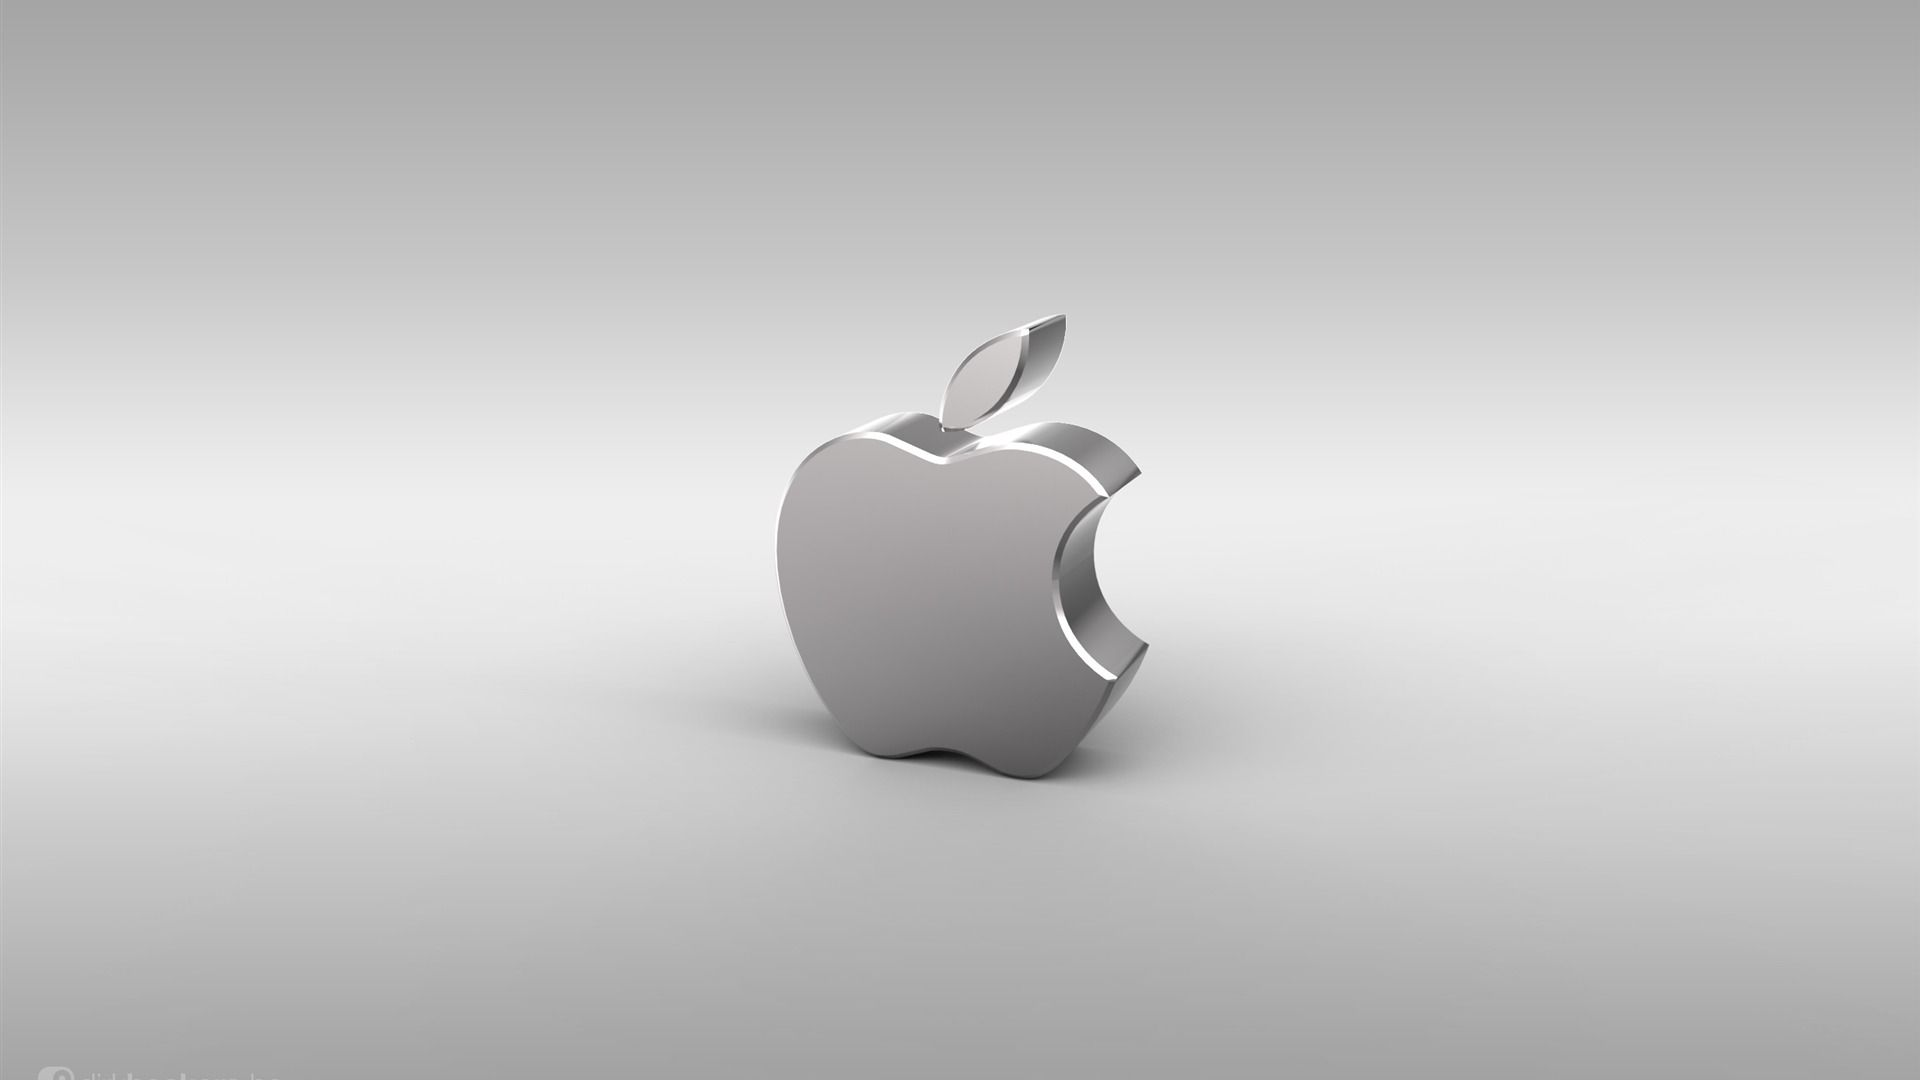 best apple logo 3d wallpaper | places to visit | pinterest | apple